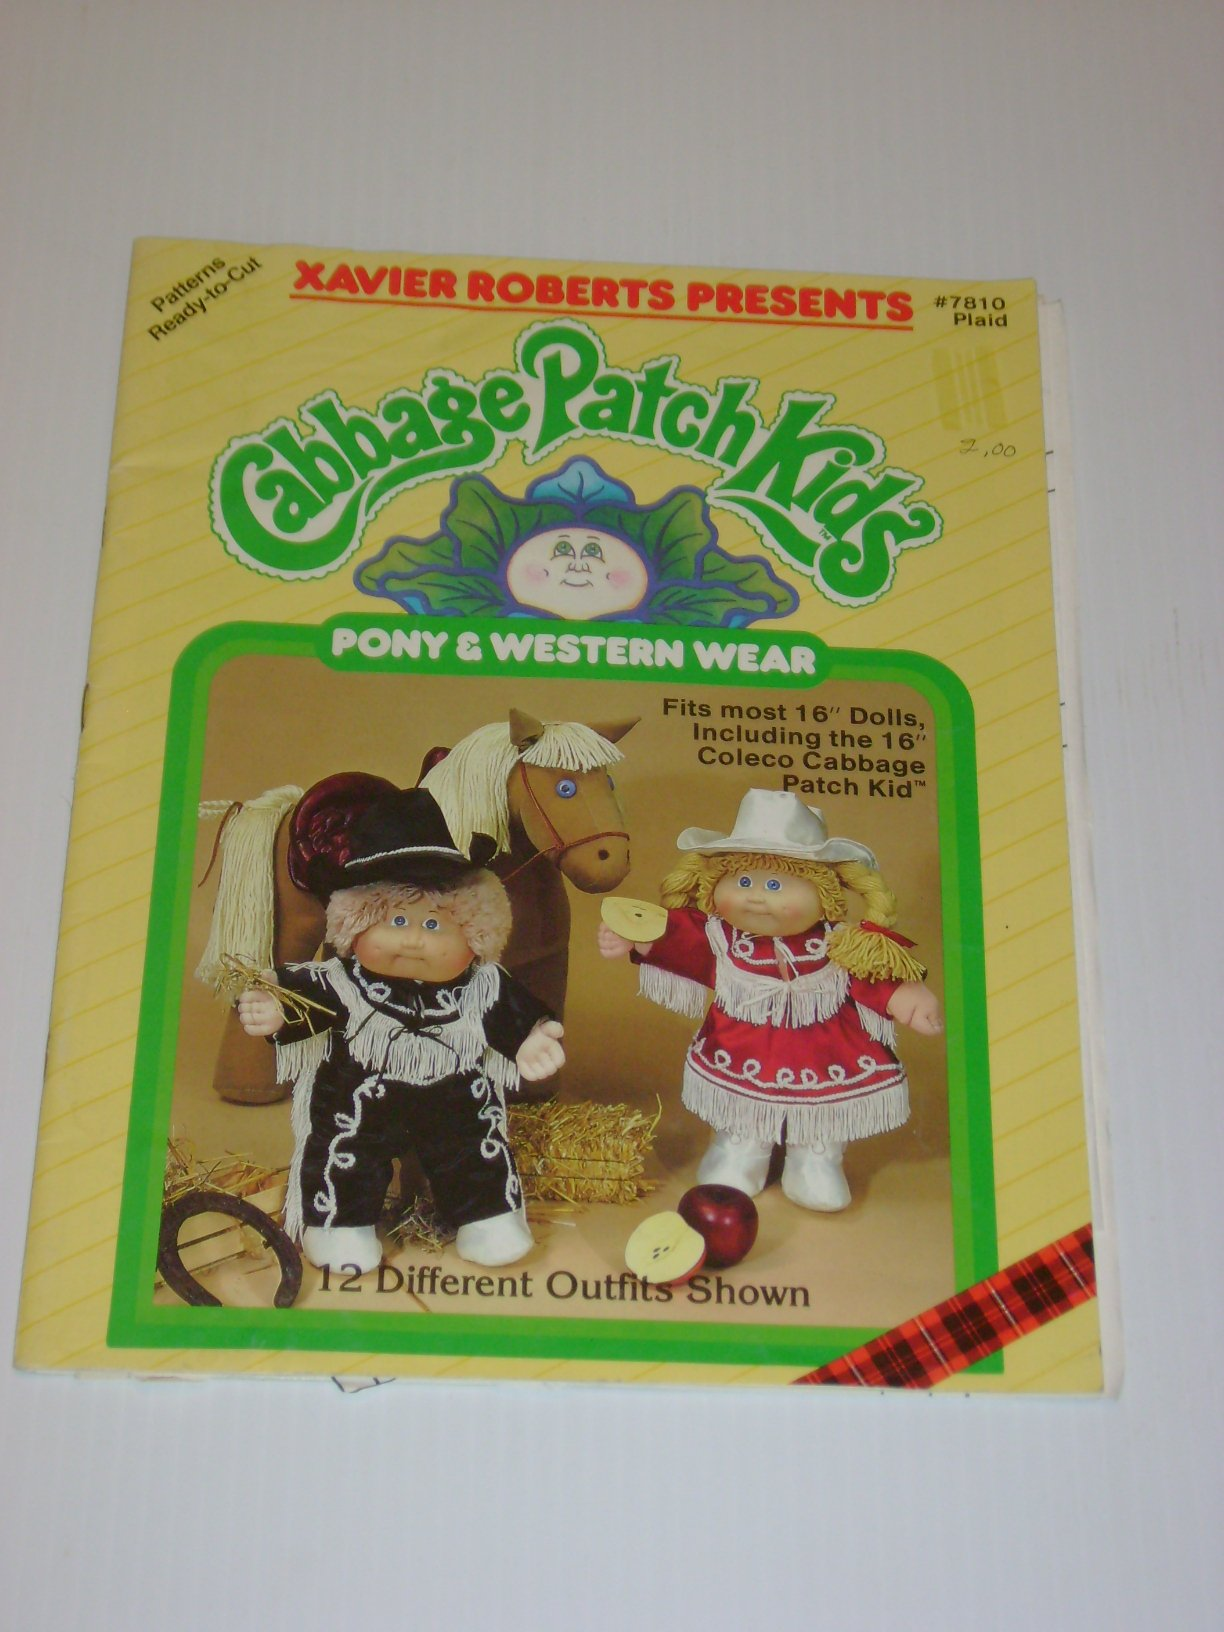 Cabbage Patch Kids Pony & Western Wear ; 16'' Dolls Clothes 12 Outfits ; #7810 Plaid